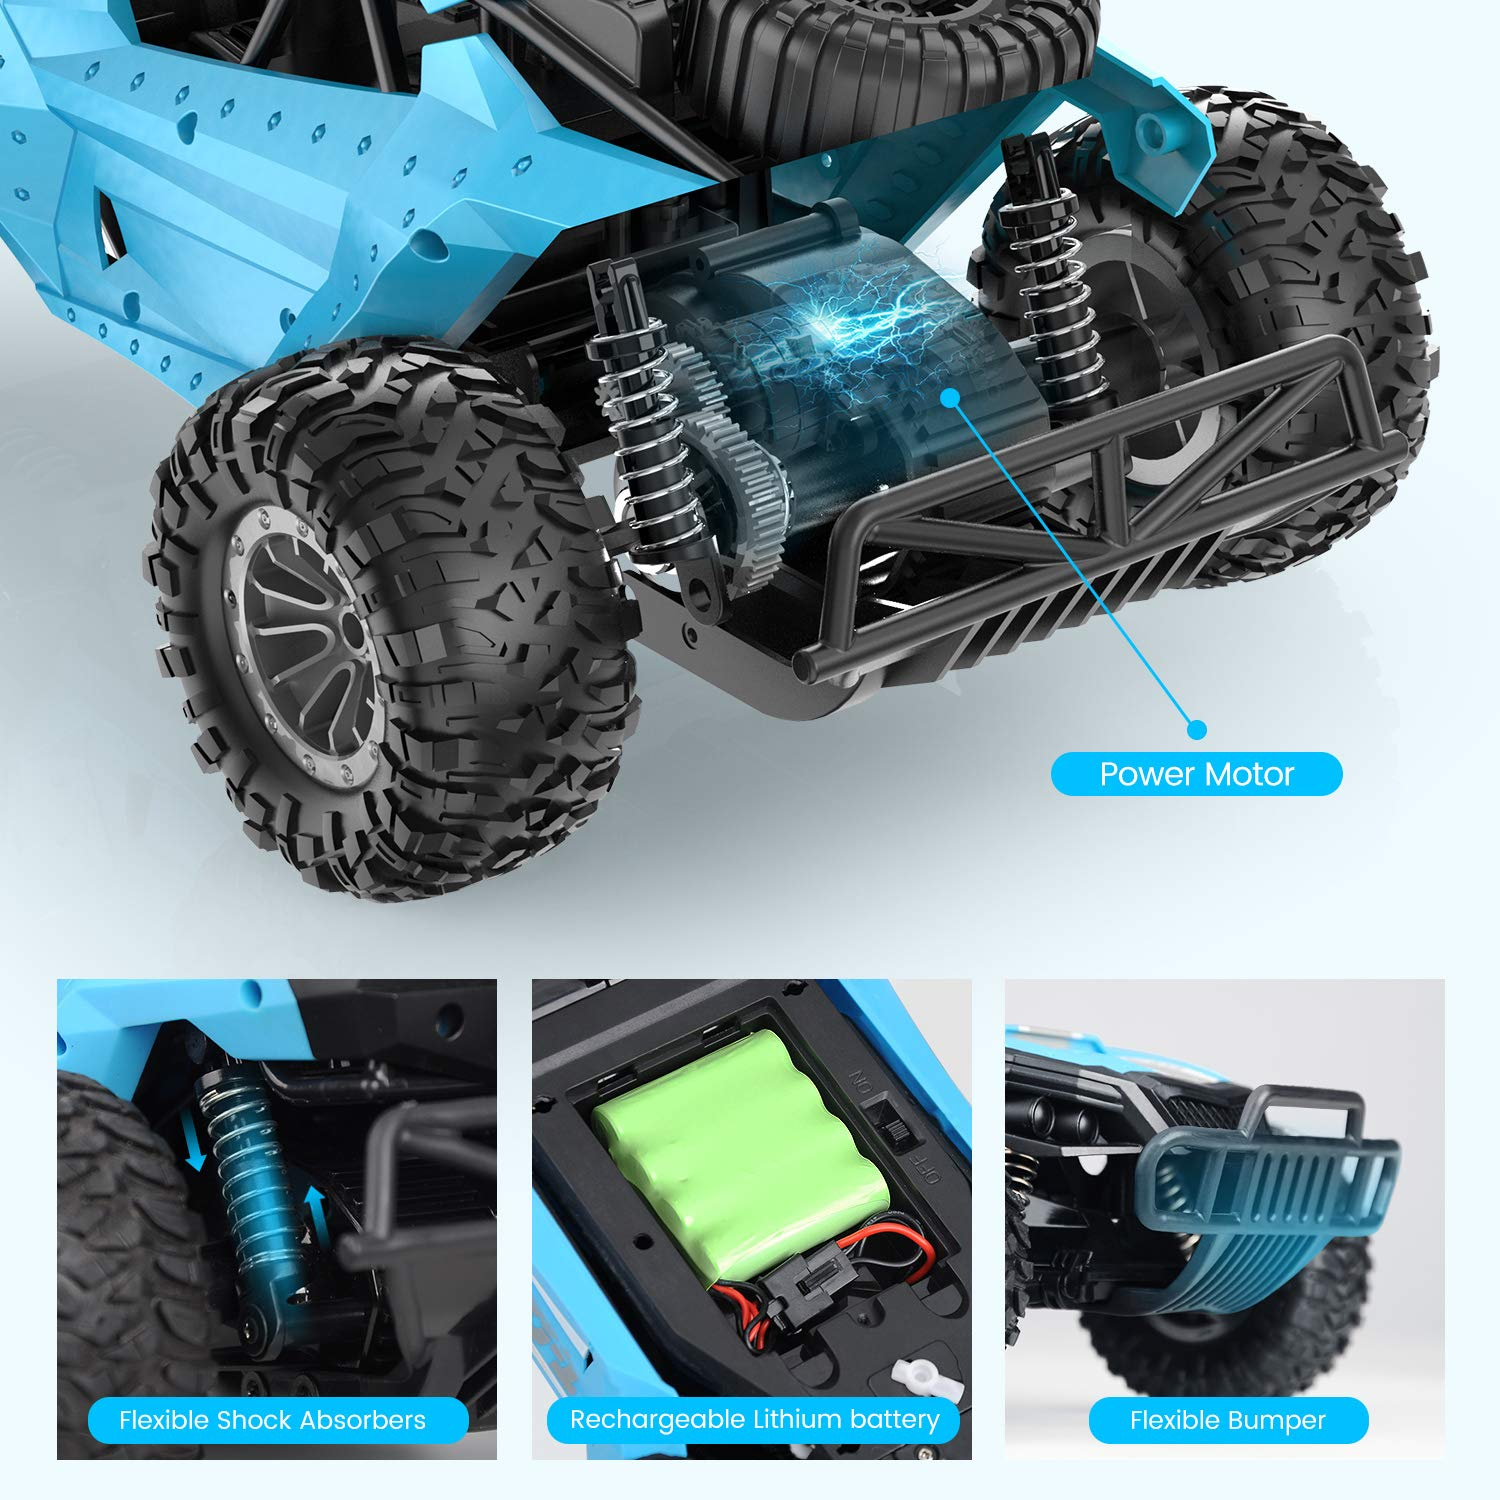 Tomzon Remote Control Car, 1/16 Scale High Speed Car, 2.4GHz Off Road Trucks with Shock Absorbers Anti-Slip Tires, 30 Minutes of Battery Life, RC Toy for Kids & Adults RTR